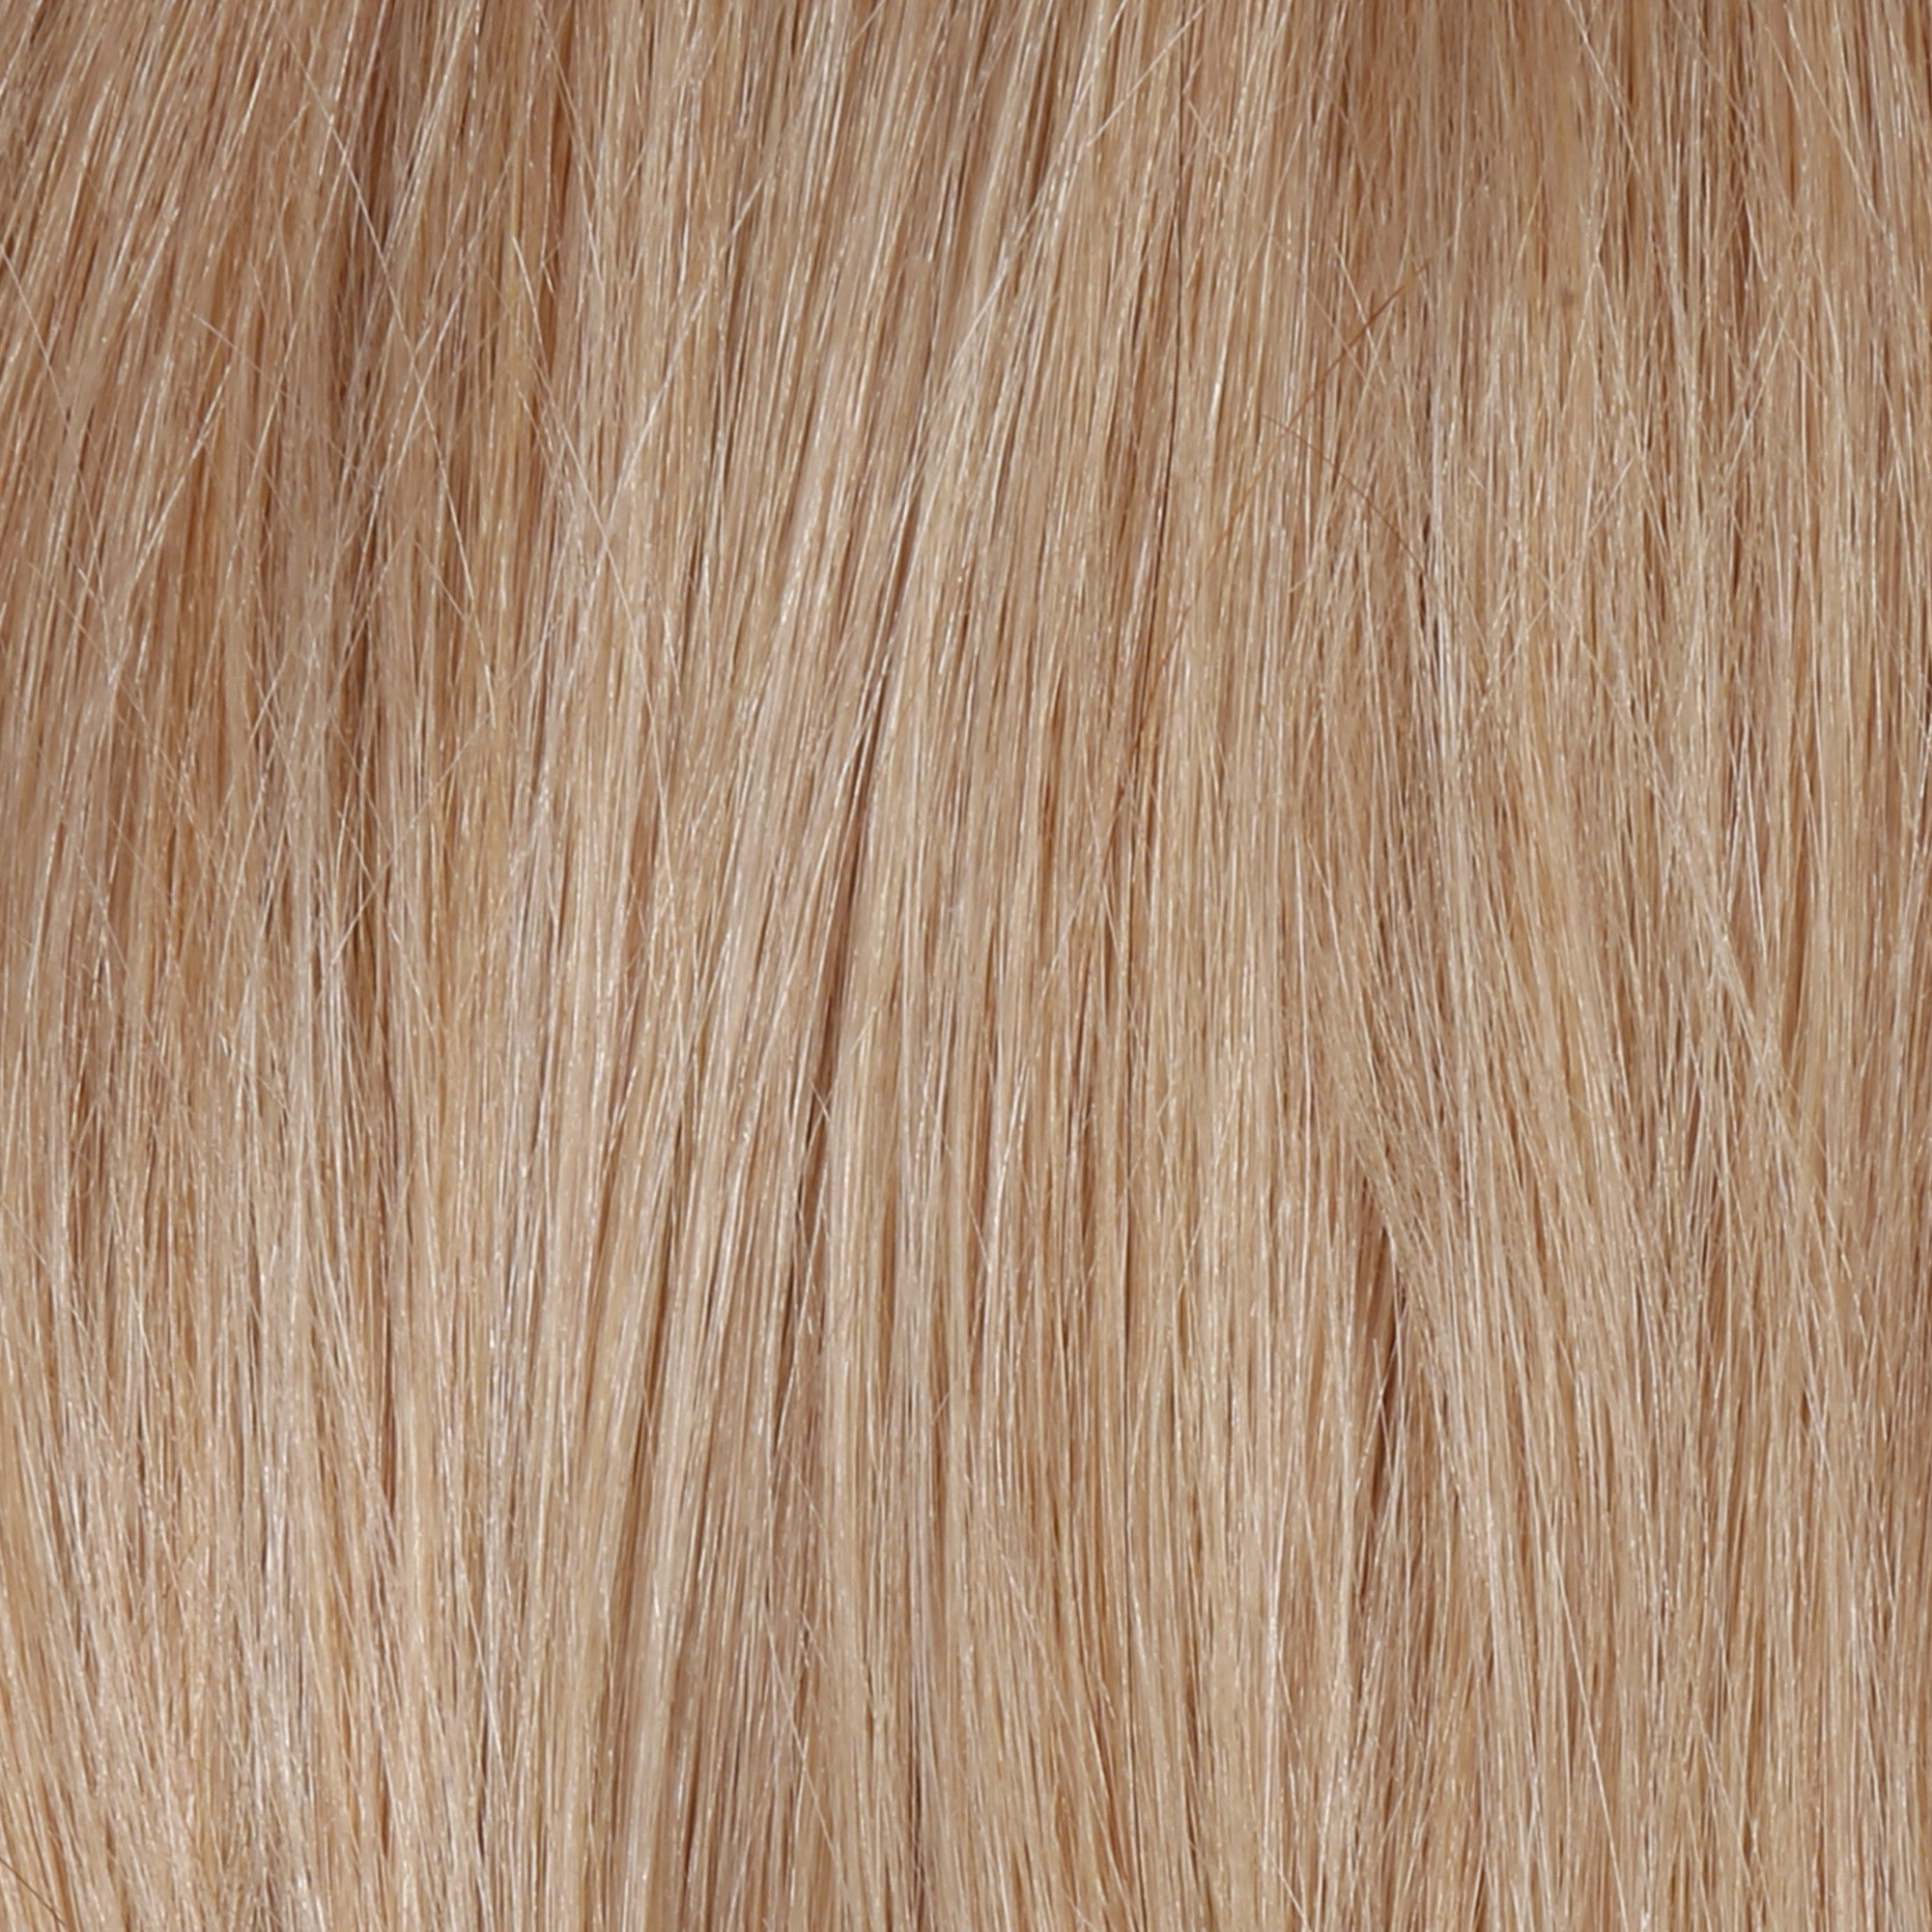 Clip in Hair Extension - Strawberry Blond 27